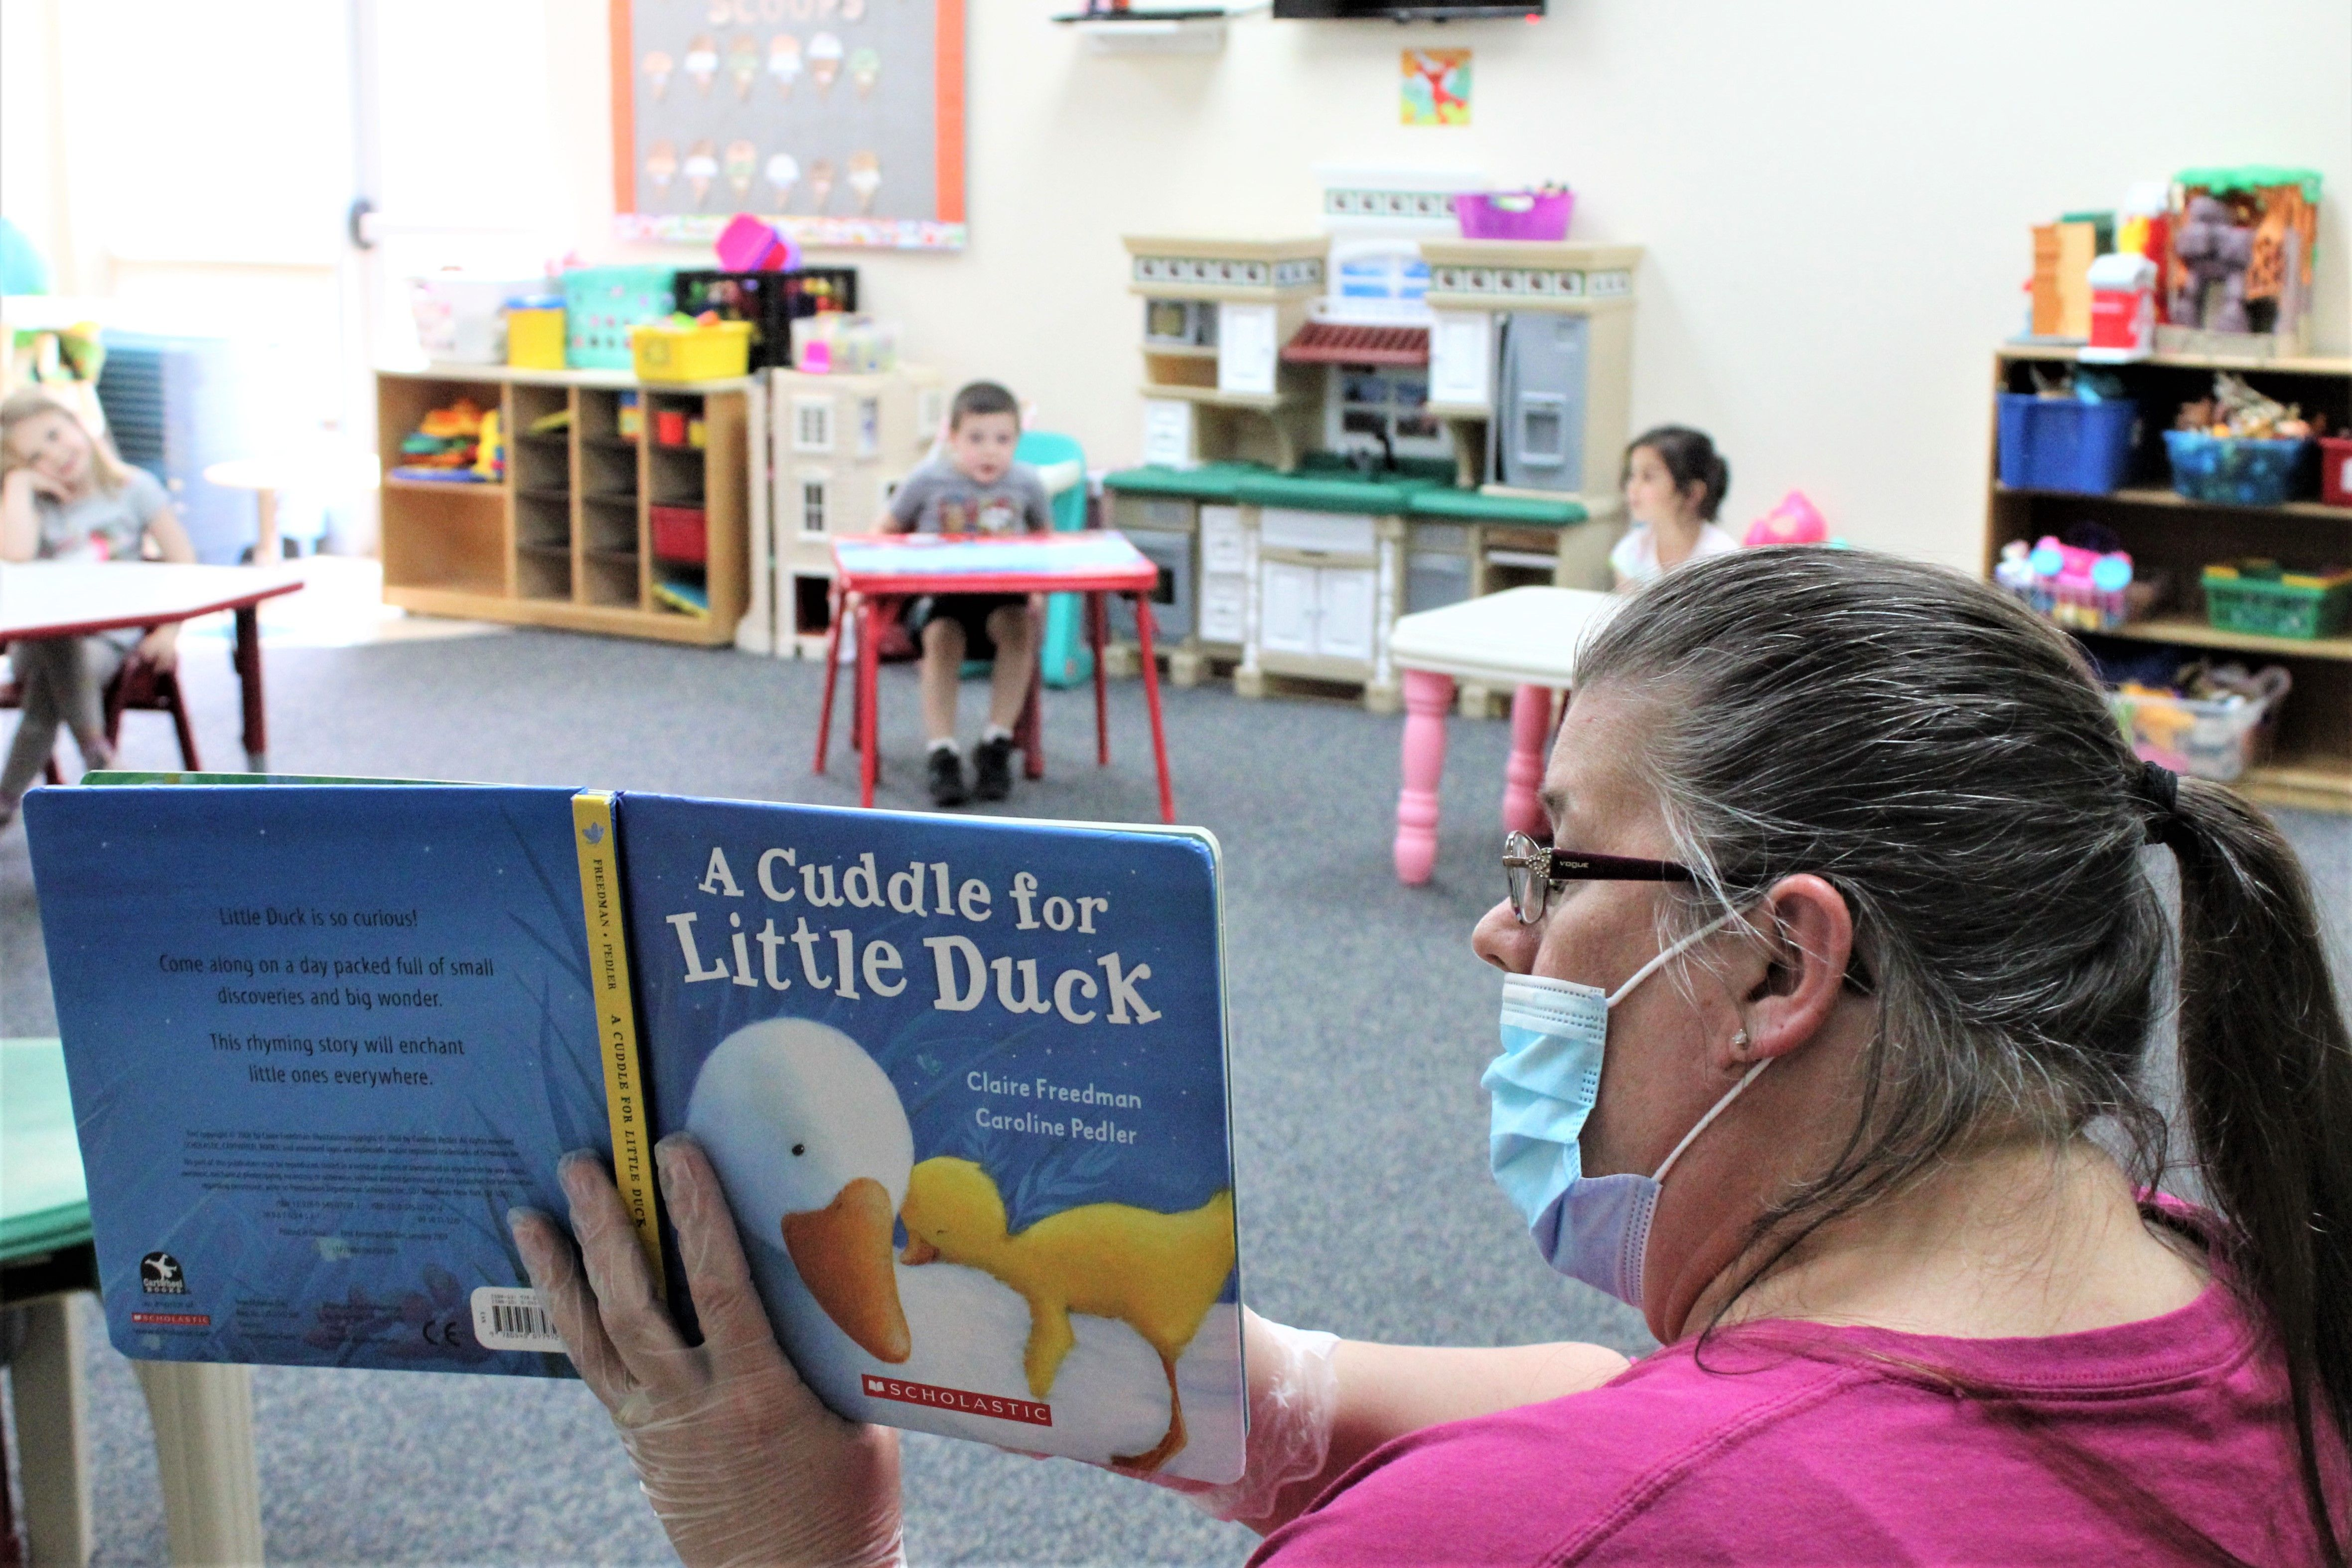 Daycare provider Darlene Mount reads a book to children at a New Jersey YMCA during the ongoing COVID-19 pandemic. The children are in a modified circle that allows for proper social distancing.